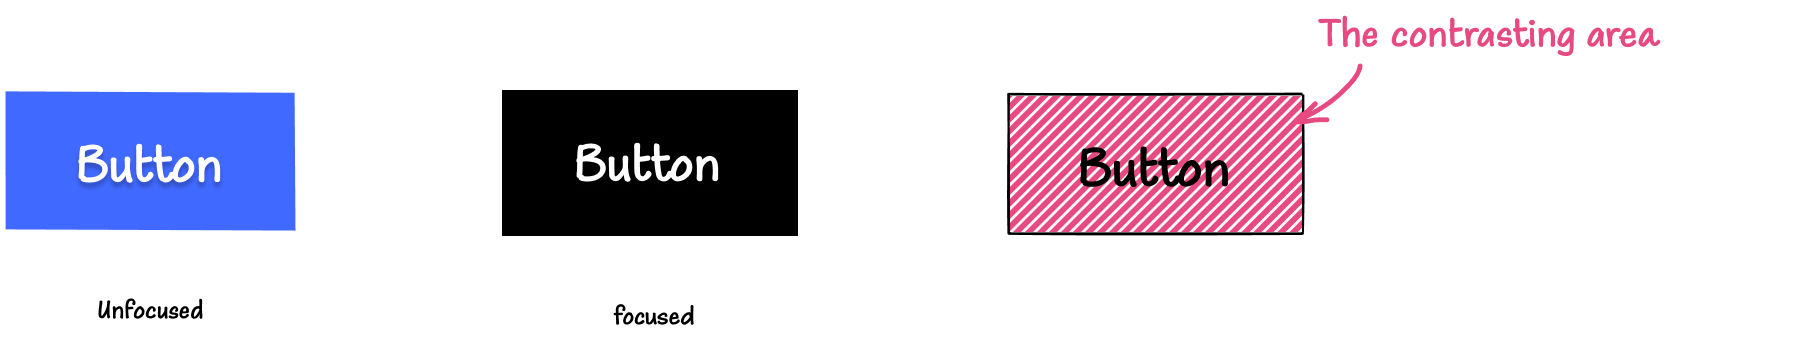 Illustration: On the left is a blue button with a white label in its default, unfocused state. In the middle is the button in its focused state, having a black background instead of blue. On the right, is a button with with a pattern applied to its background area, indicating that this patterned area is the contrasting area.